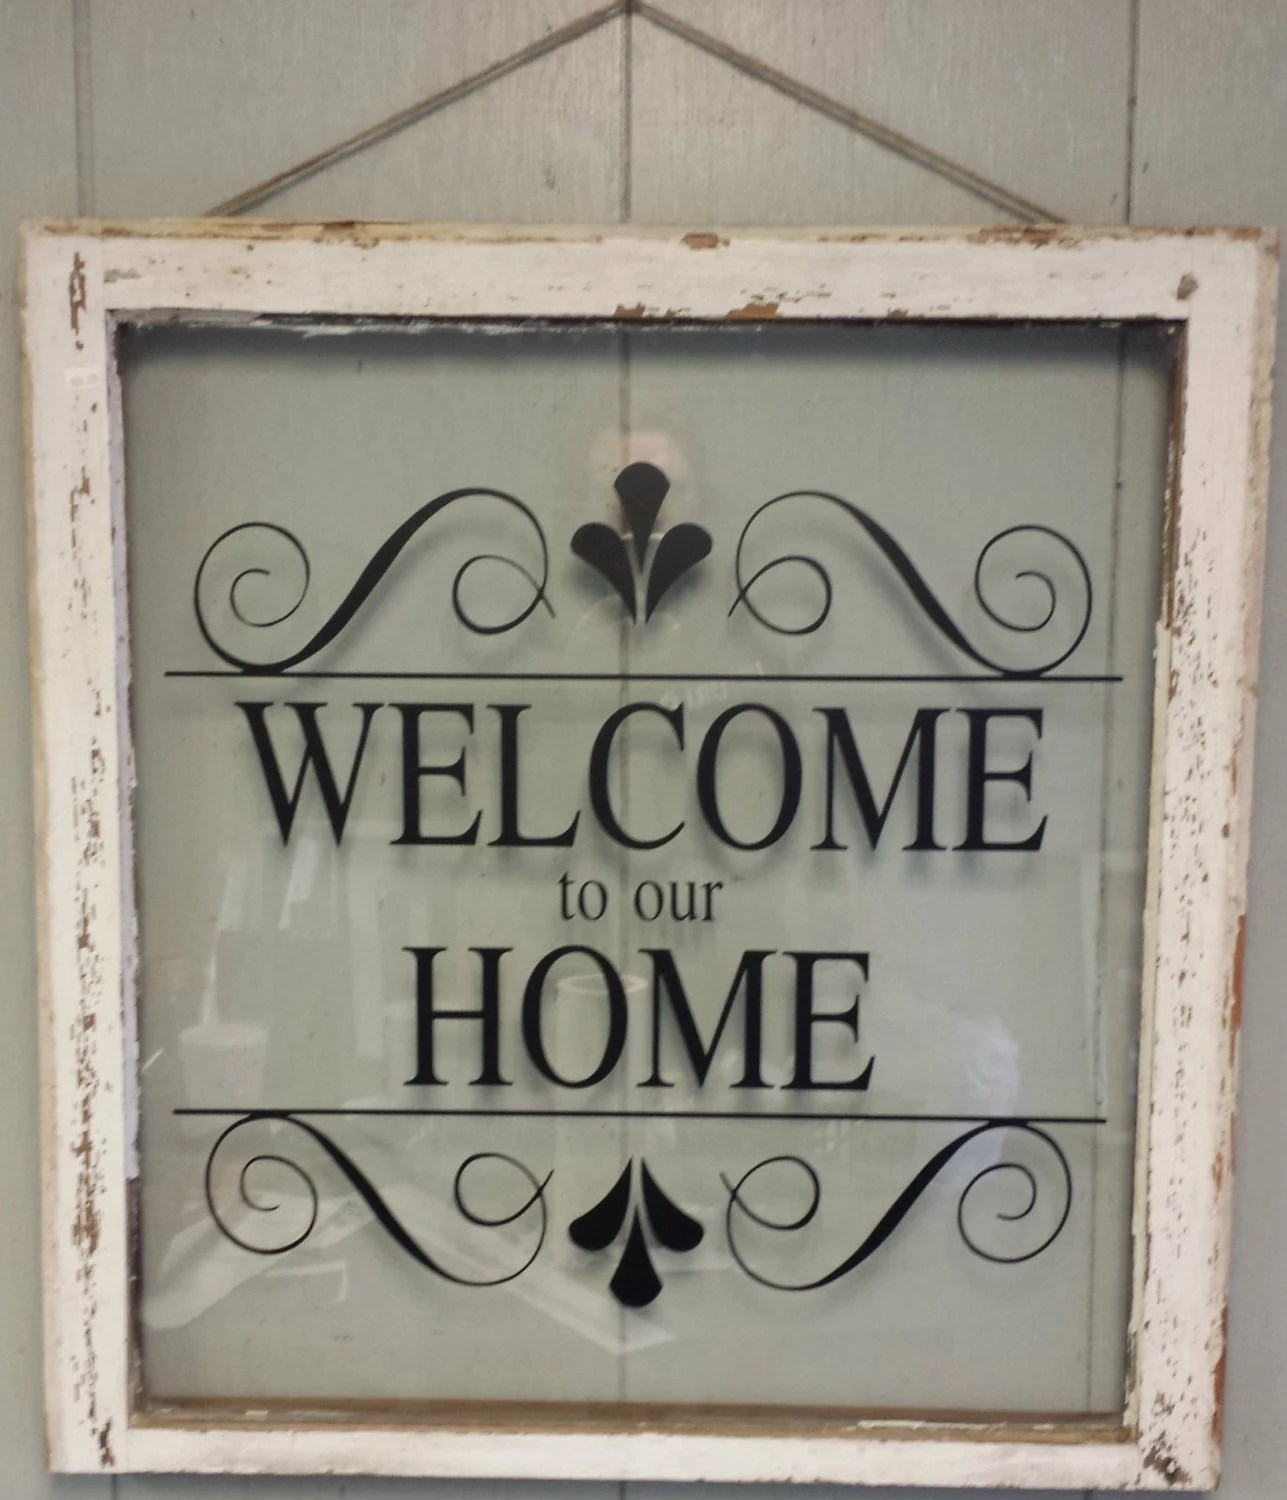 Vintage Single Pane Window Personalized Welcome to our